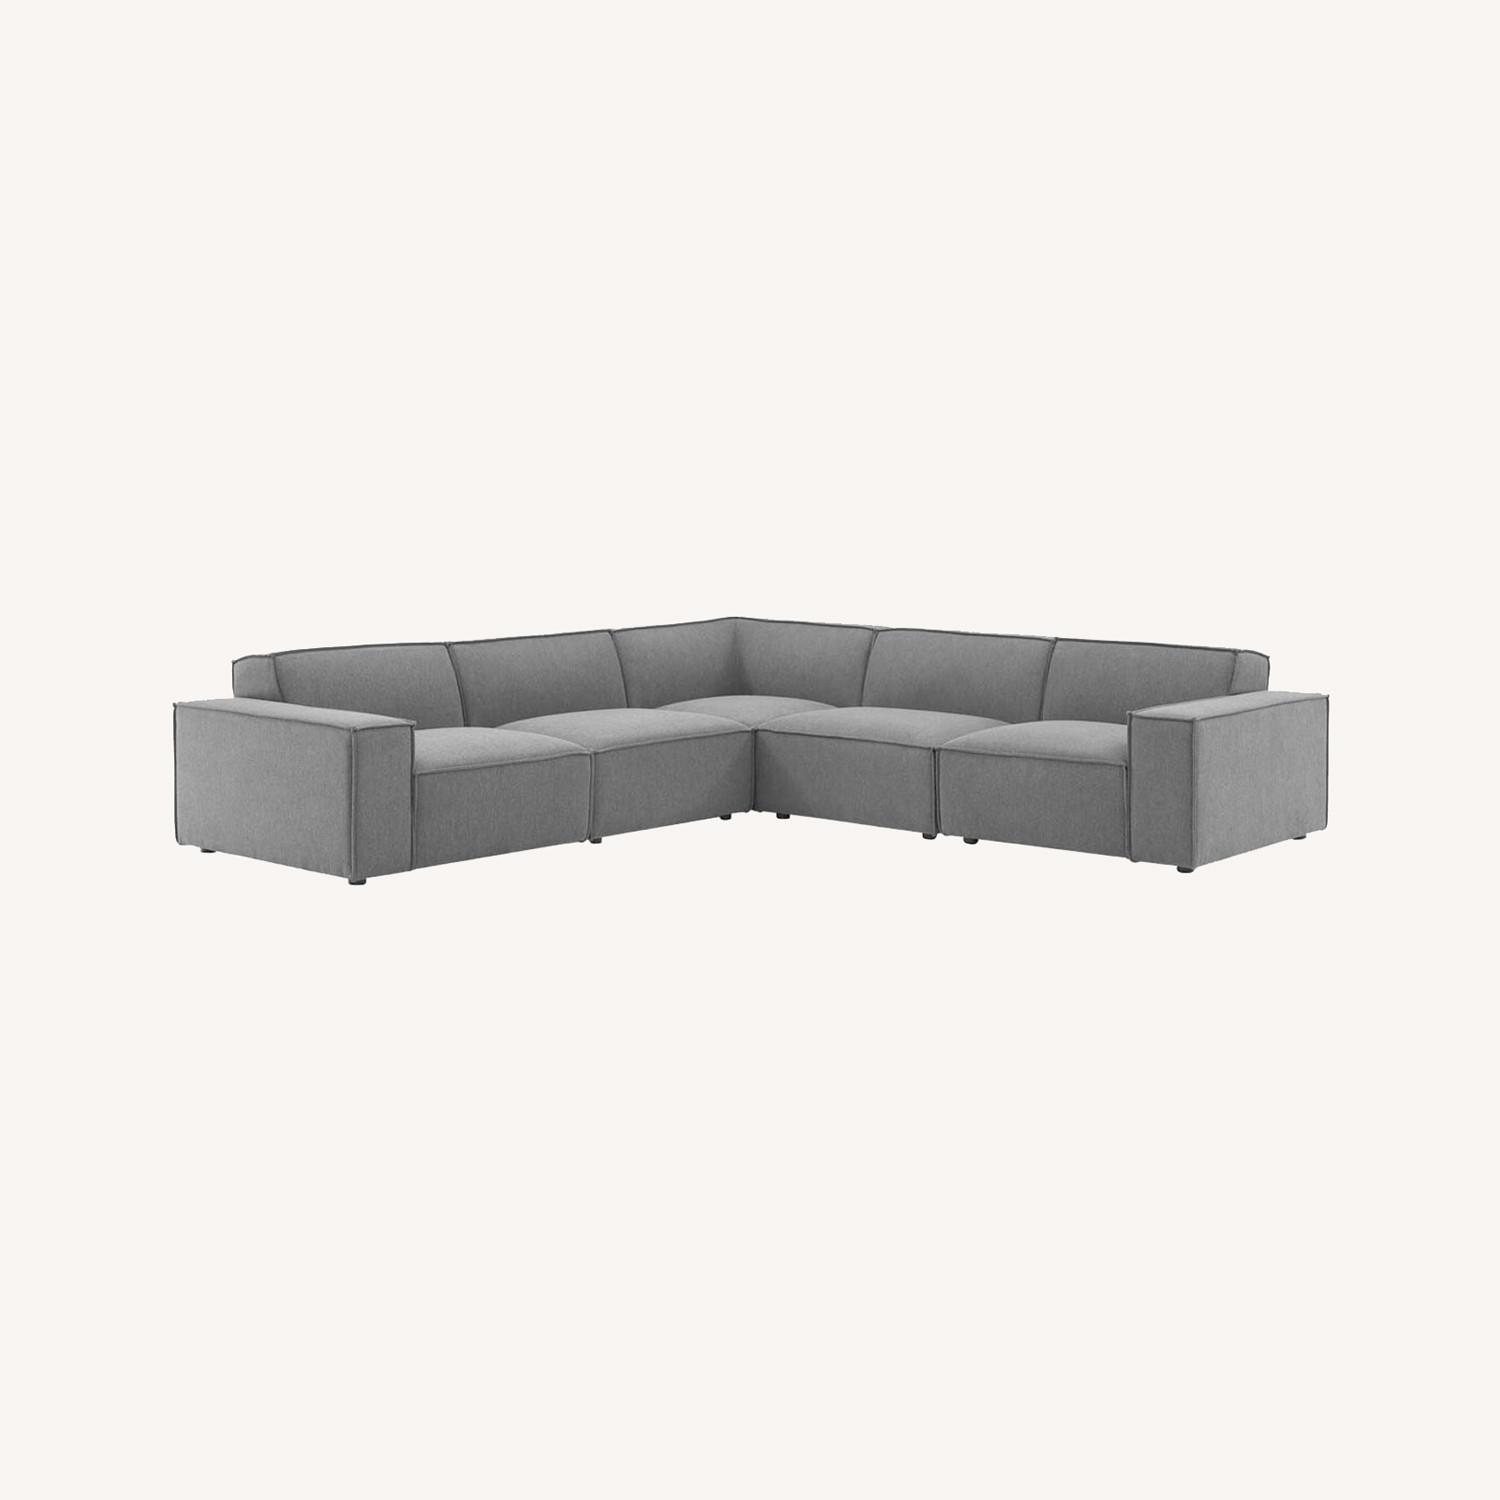 5-Piece Sectional Sofa In CharcoalW/ Piping Detail - image-11